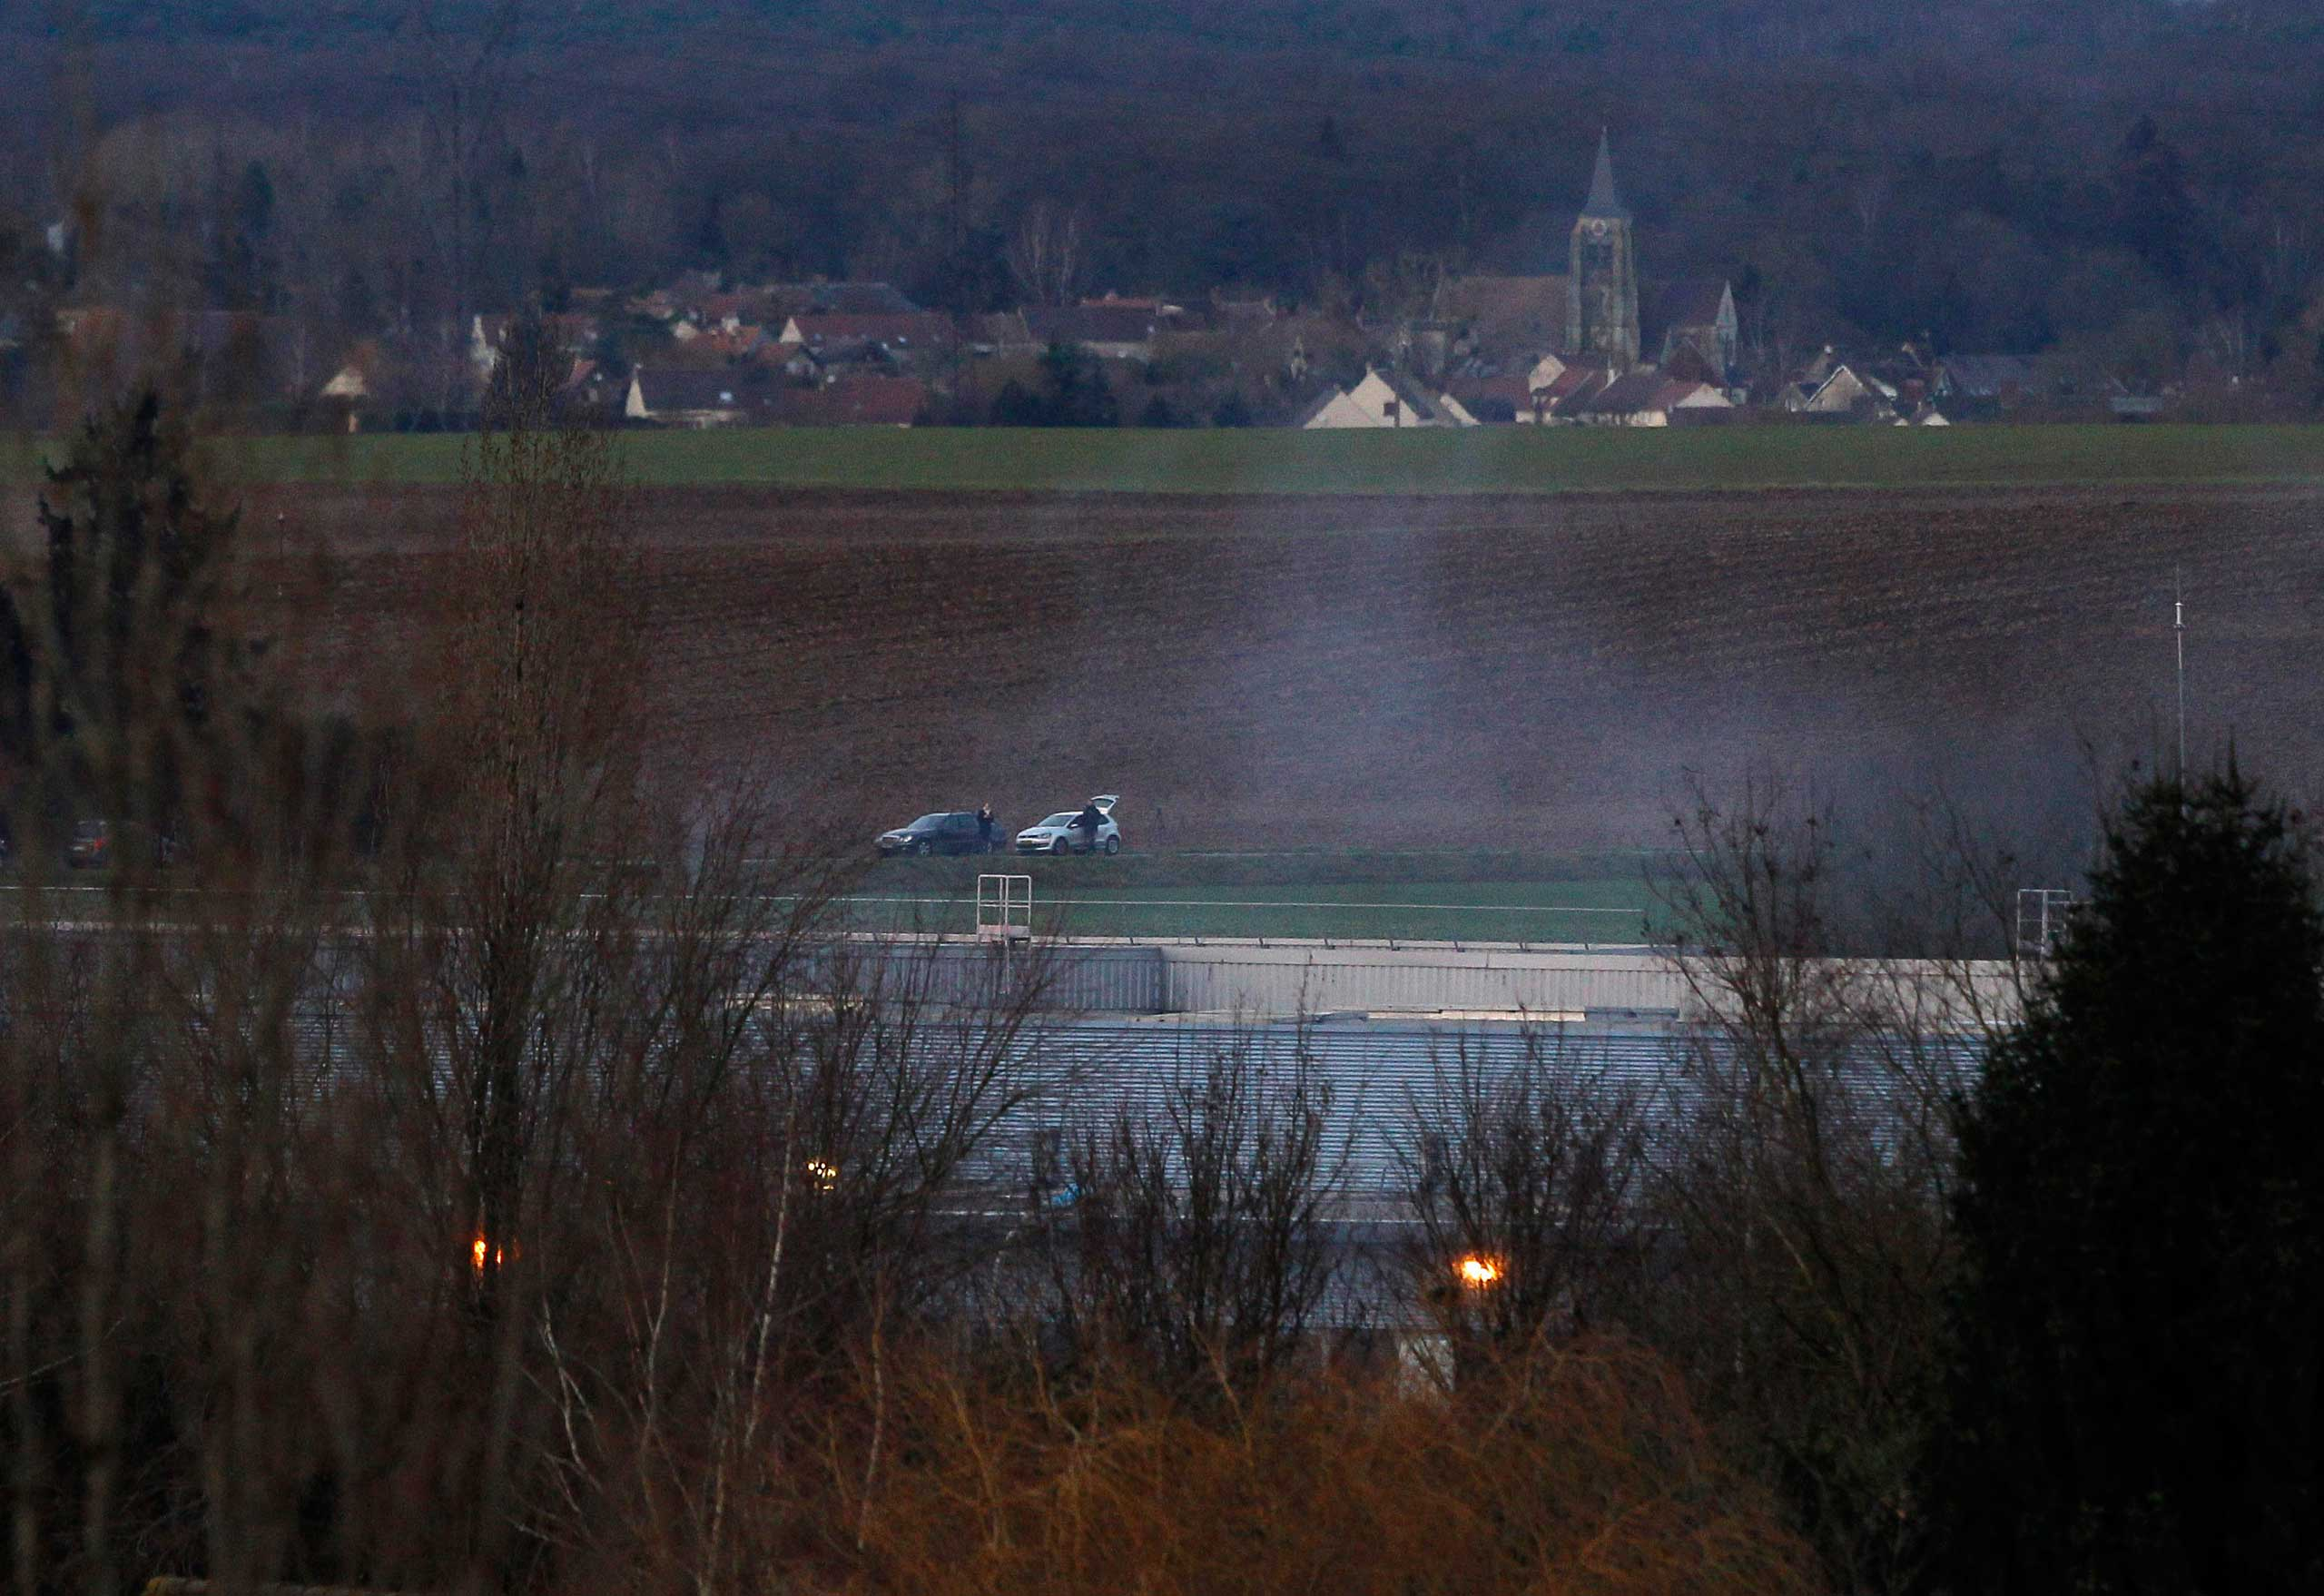 Smoke rises from a building in Dammartin-en-Goele, northeast of Paris, where the two brothers suspected in a deadly terror attack were cornered,  Jan. 9, 2015.